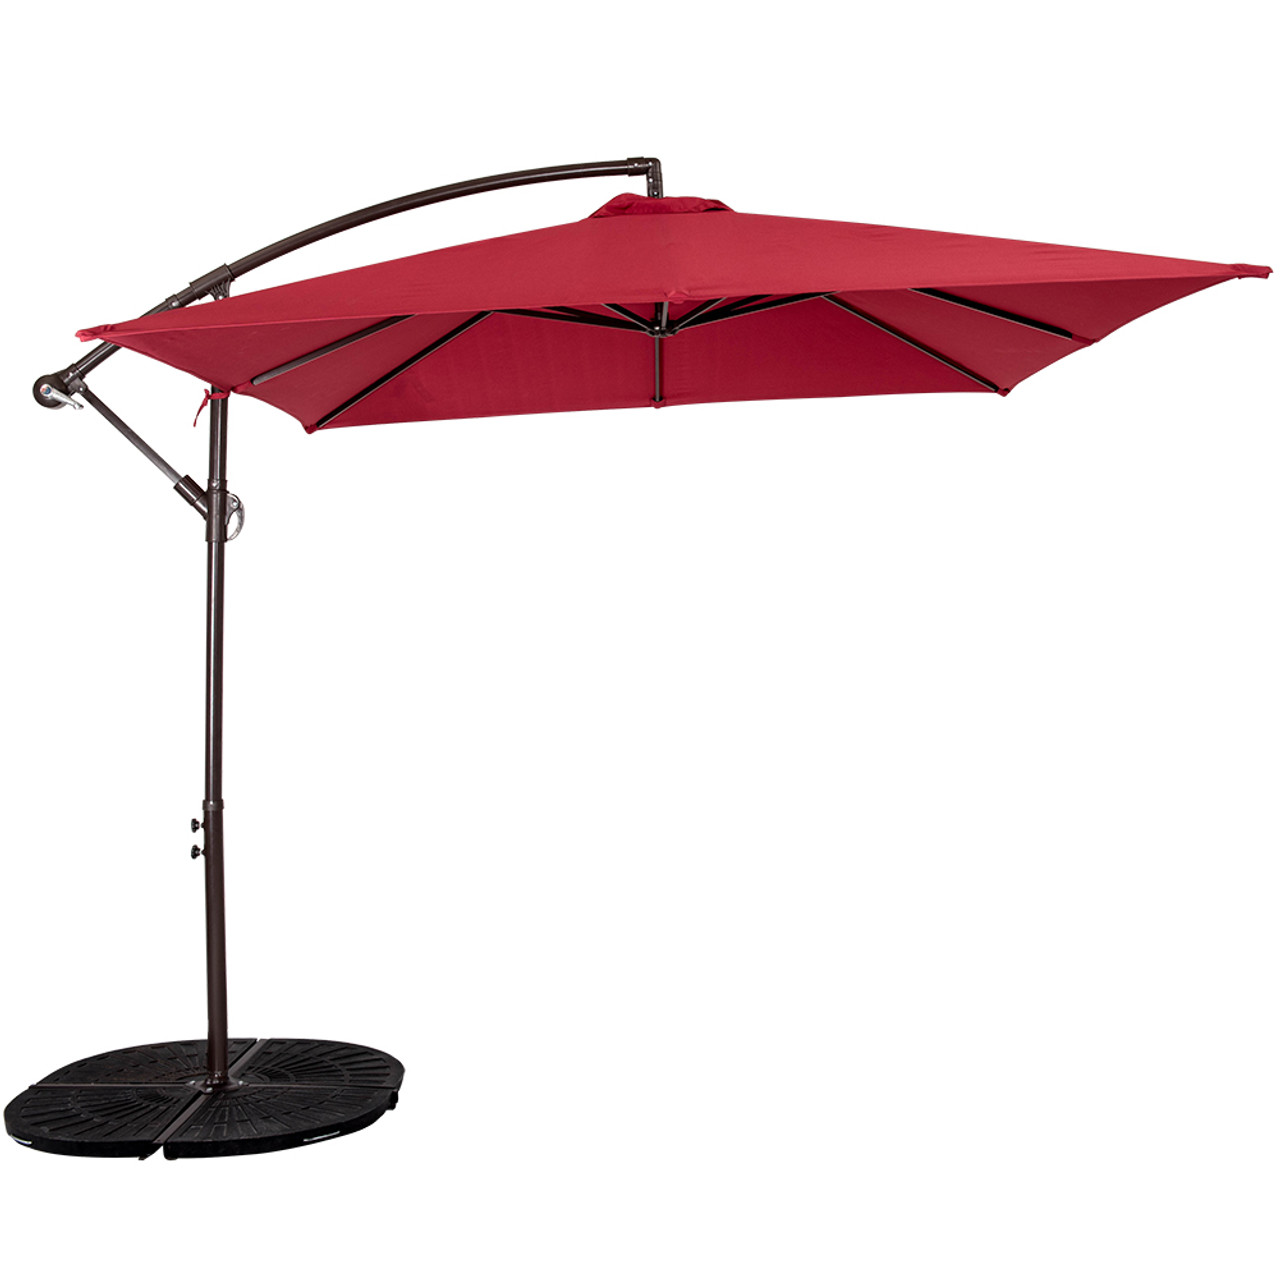 Great Patio Garden 8.2 X 8.2 FT Square Offset Patio Umbrella With Crank (Burgundy)